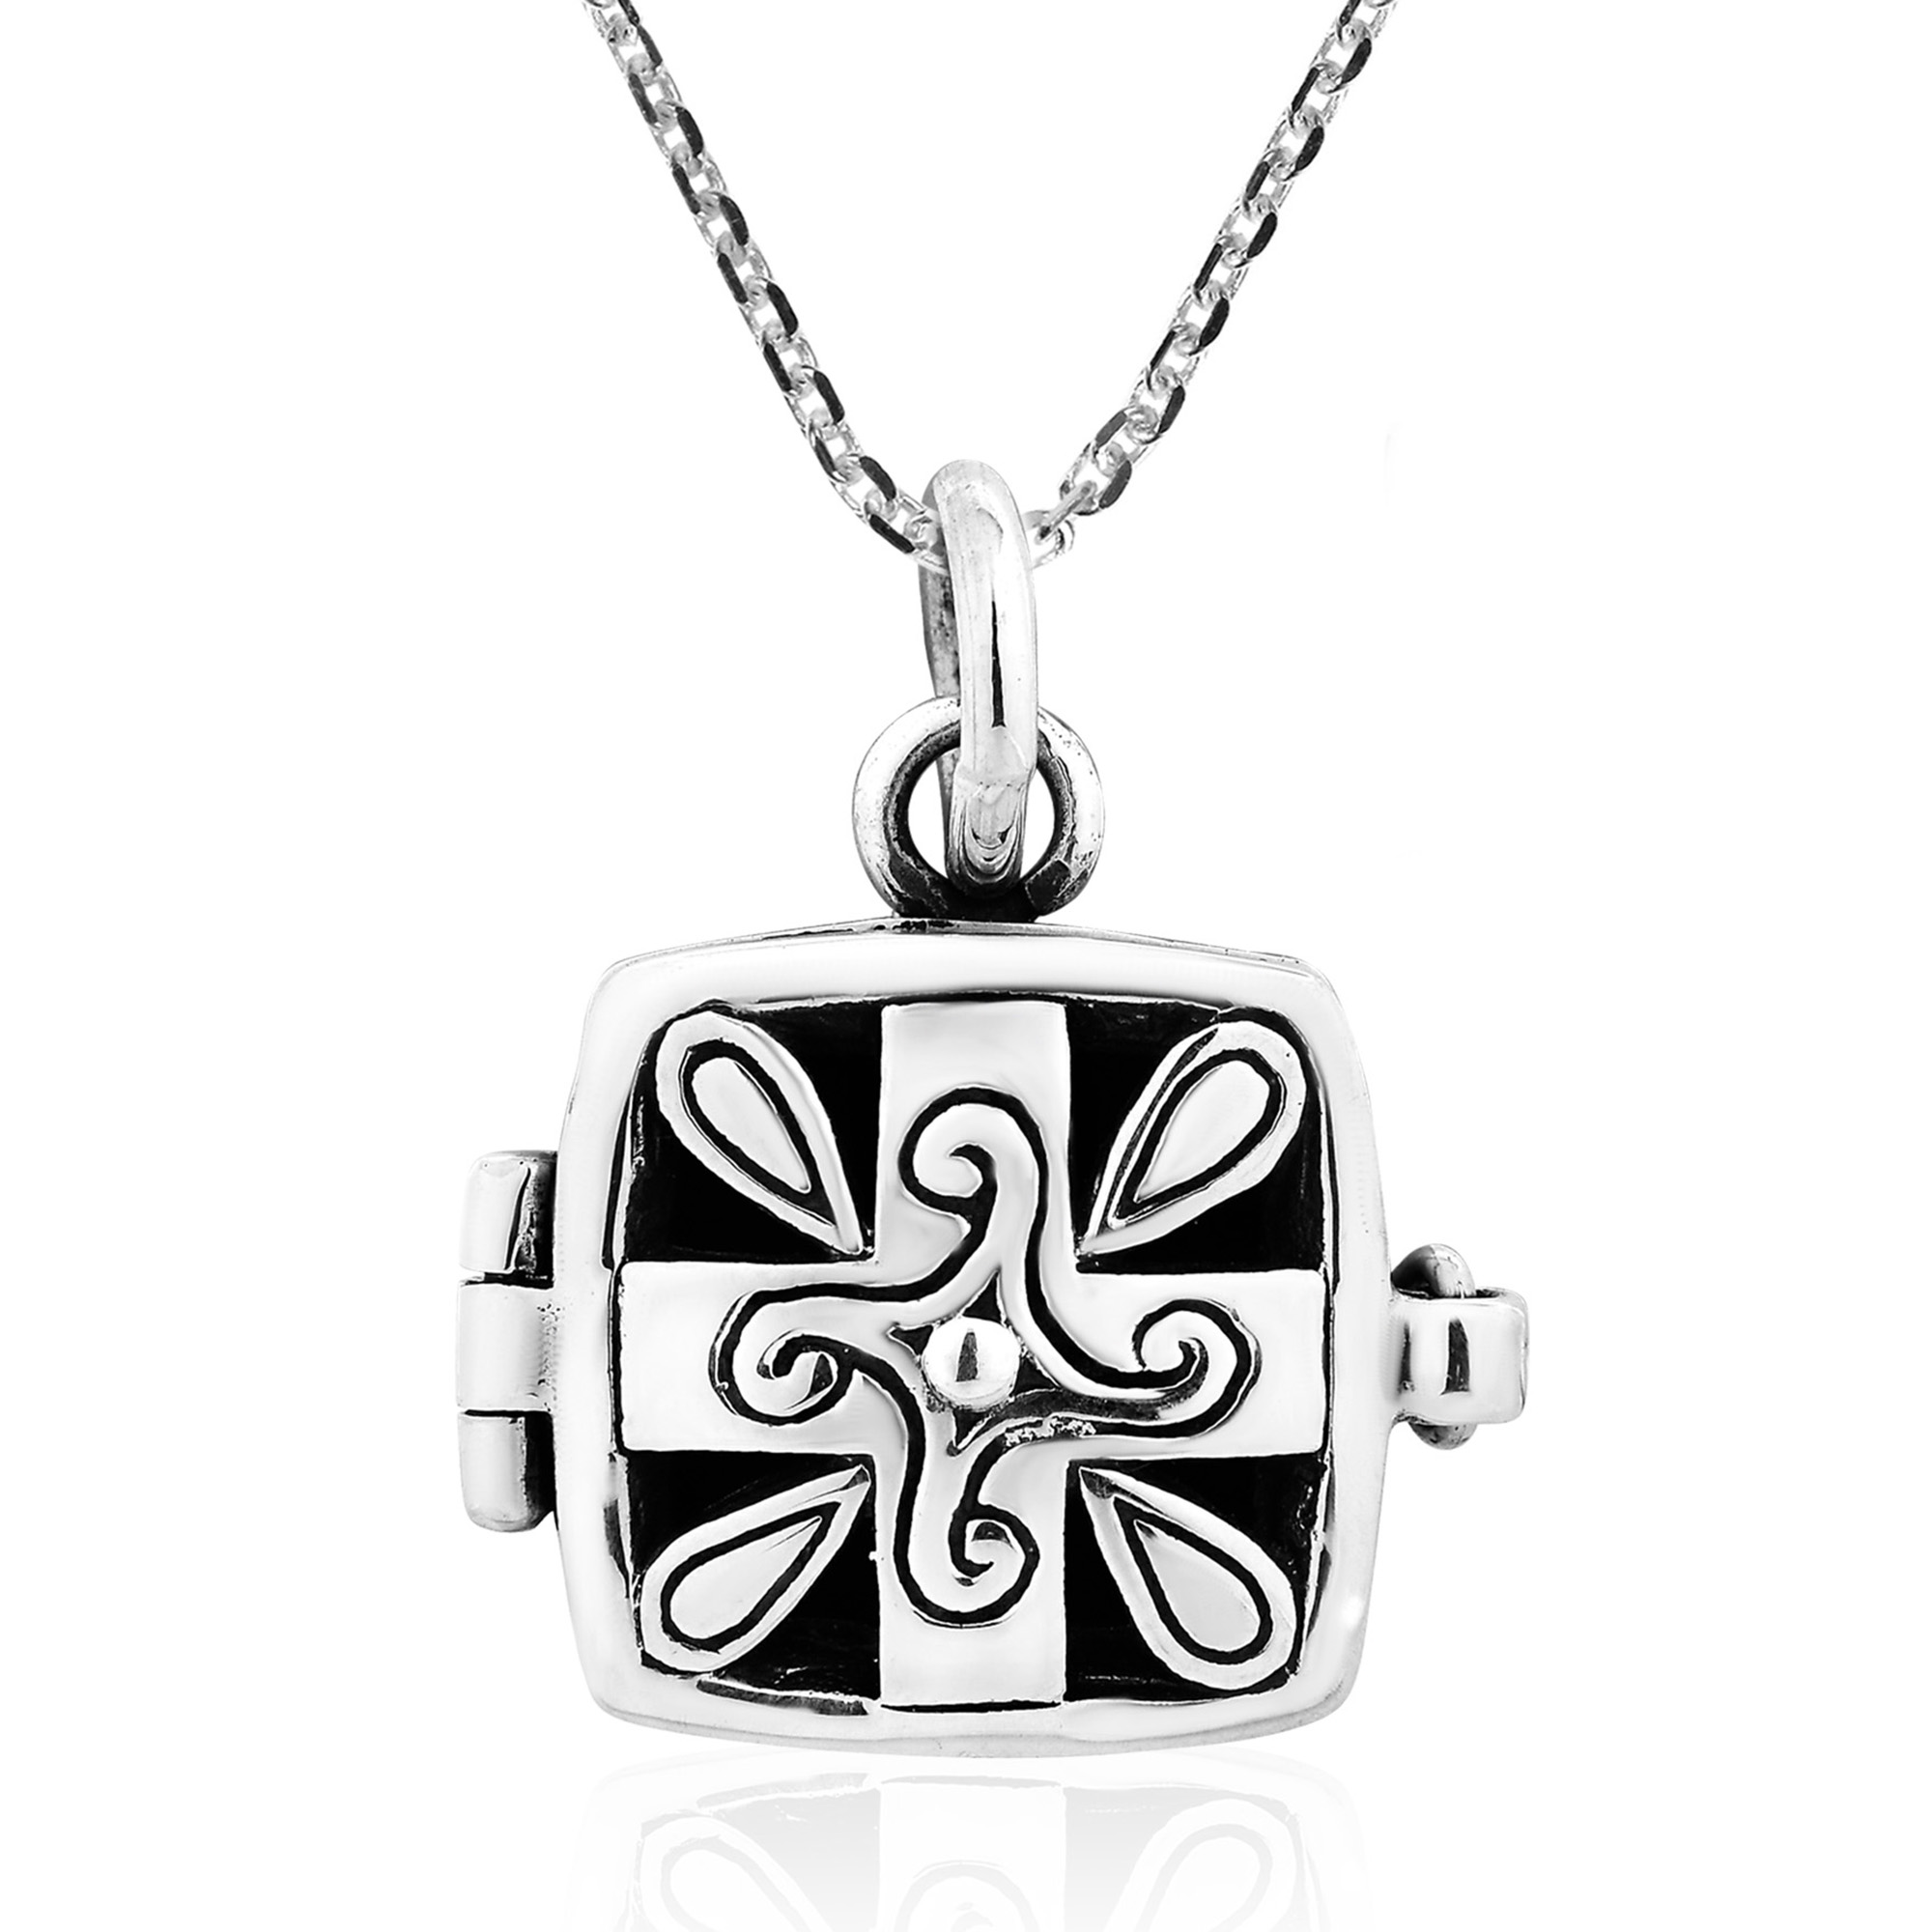 rolo buyincoins pendant item steel cross chain jesus men women girls square necklace stainless inri fashion com for silver crucifix